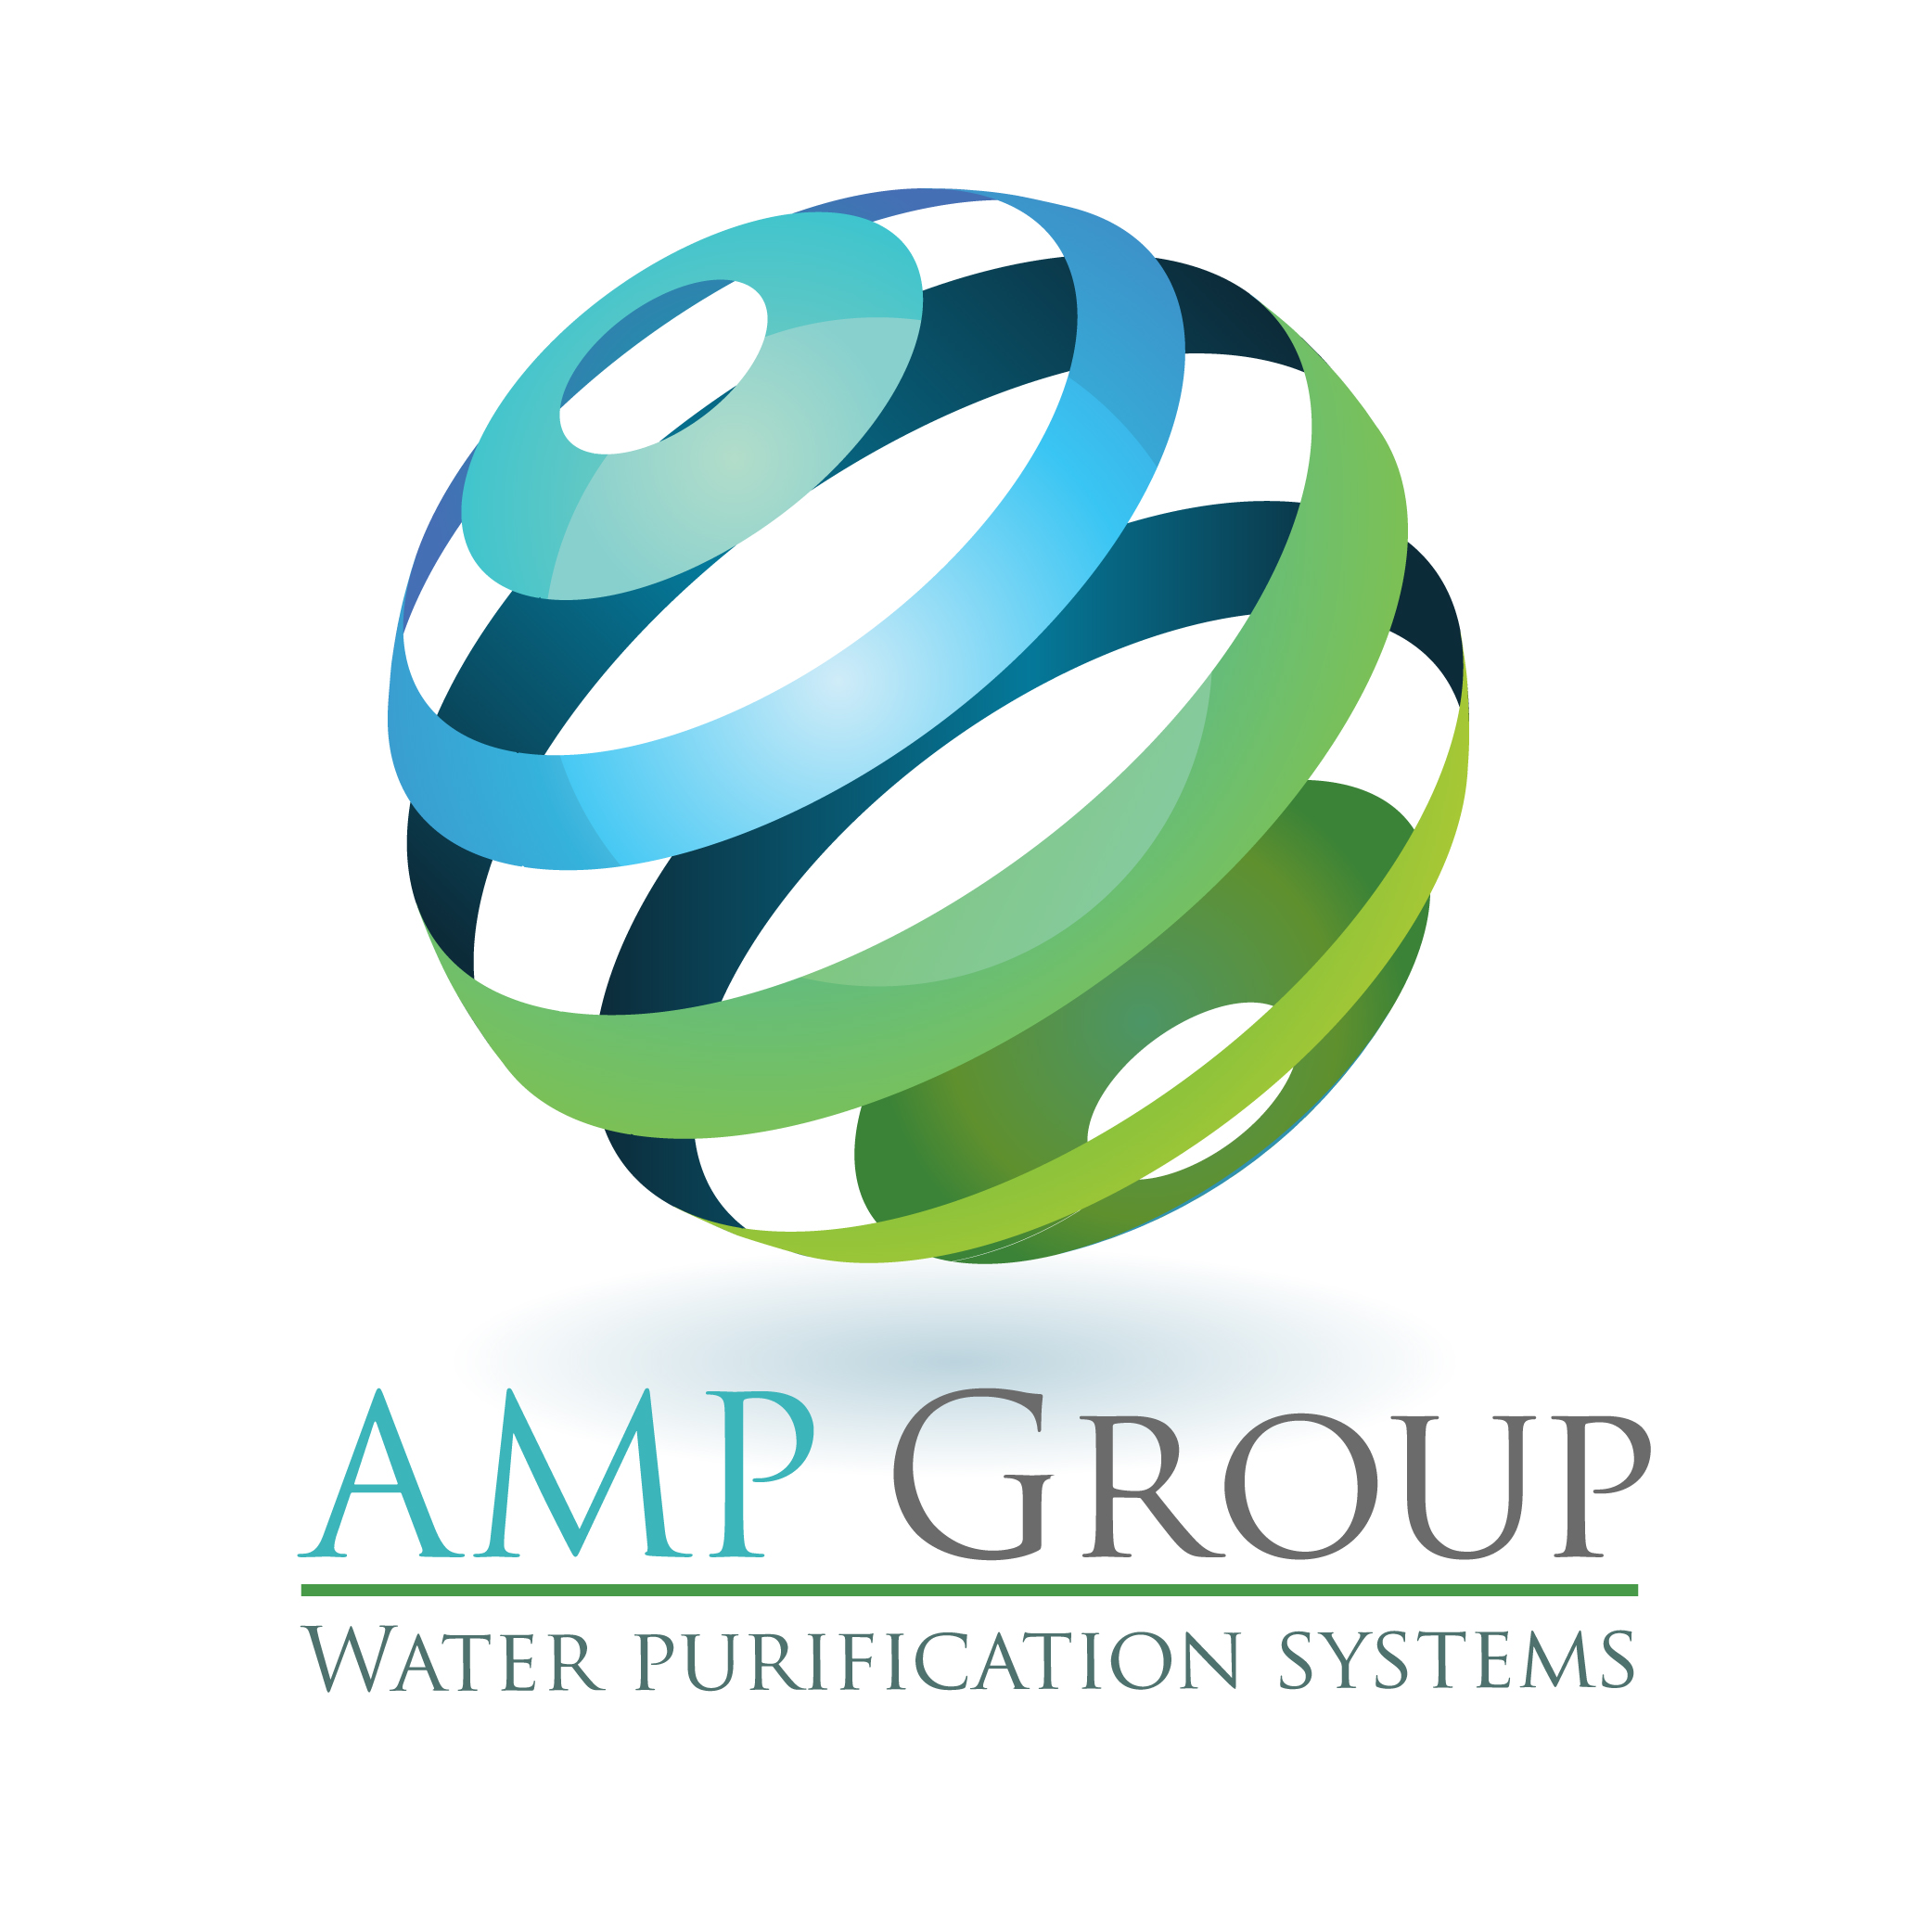 AMP Group- Purification systems